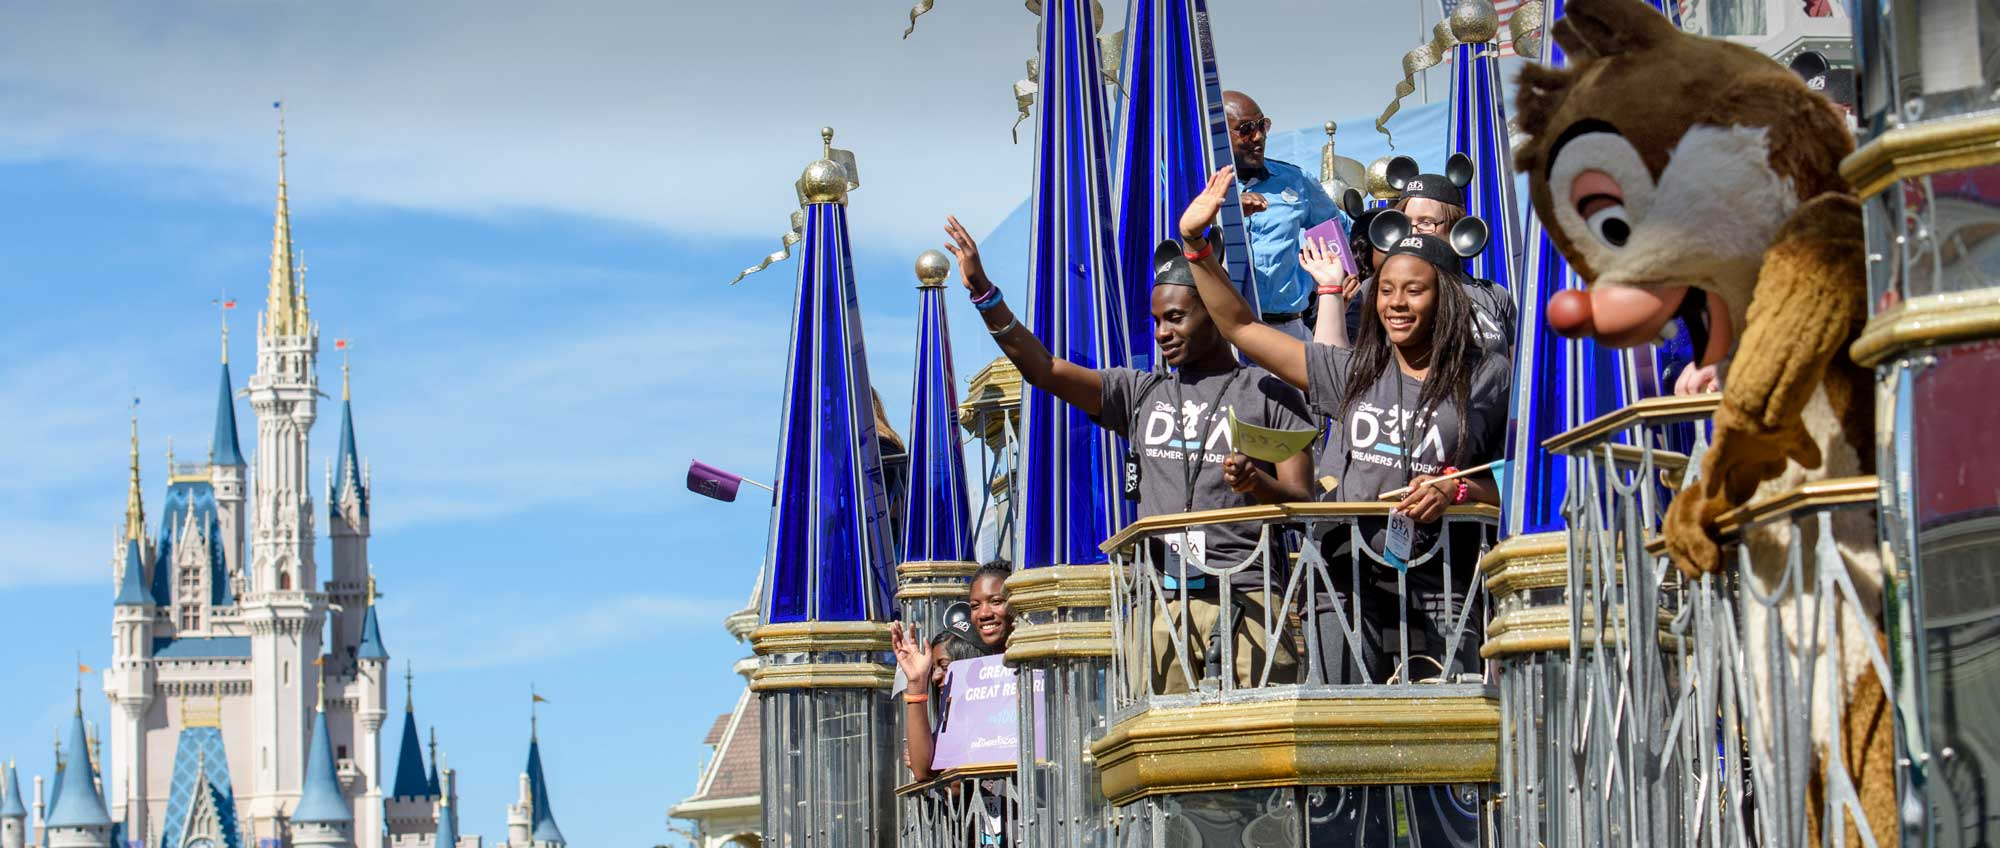 Teenage members of the Disney Dreamers Academy wave from a balcony at Magic Kingdom park as the Character Dale looks on